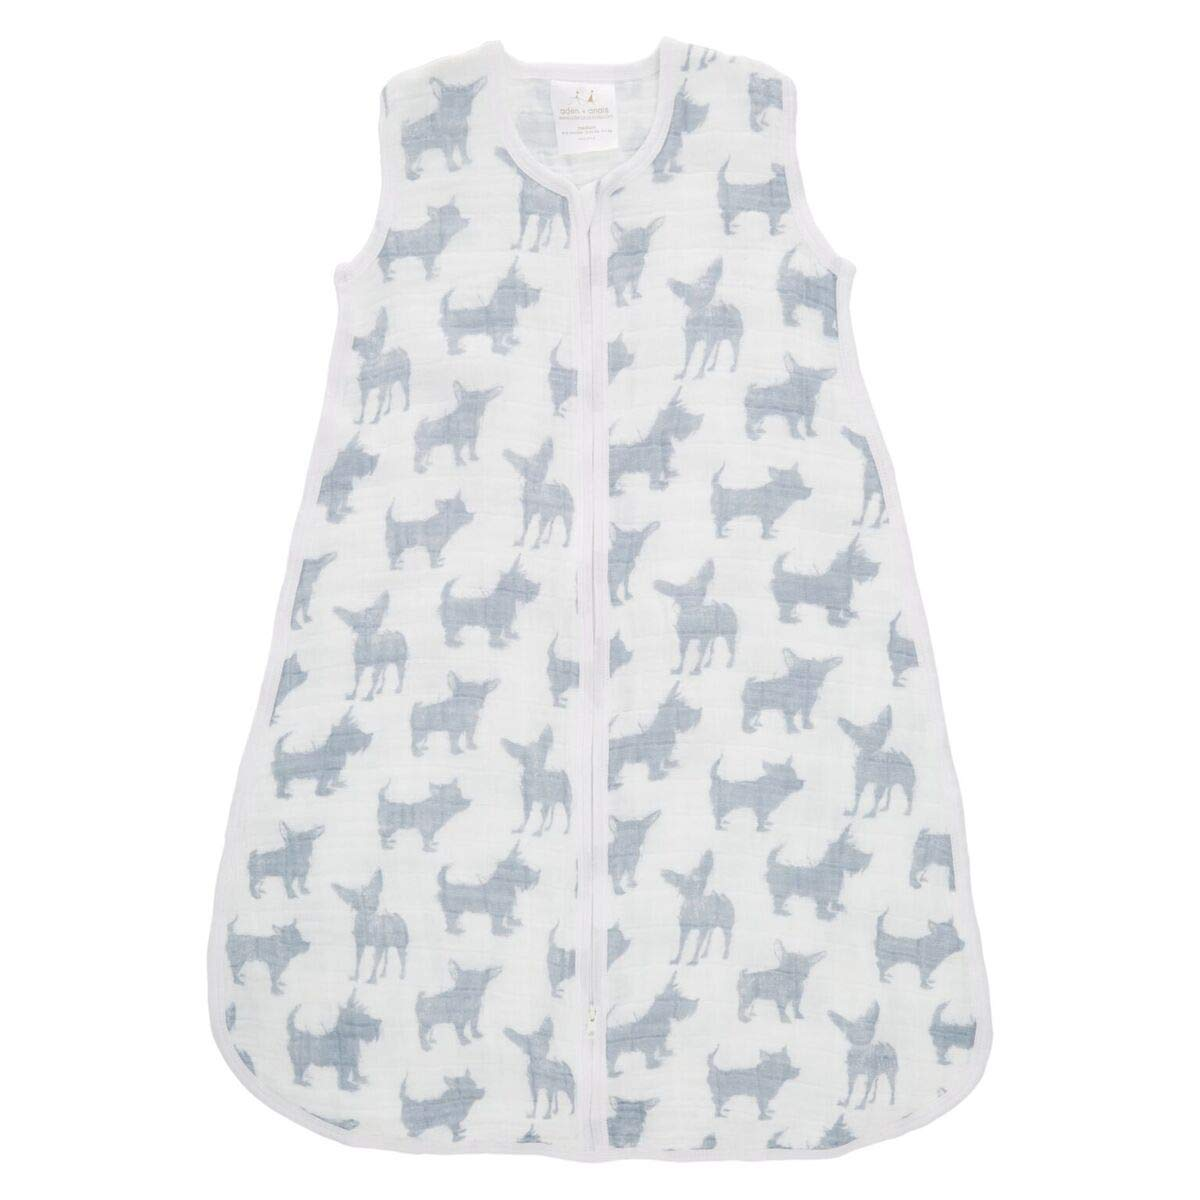 Aden + Anais Classic Sleeping Bag, 100% Cotton Muslin, Wearable Baby Blanket, Extra Large, 18+ Months, Waverly - Pup